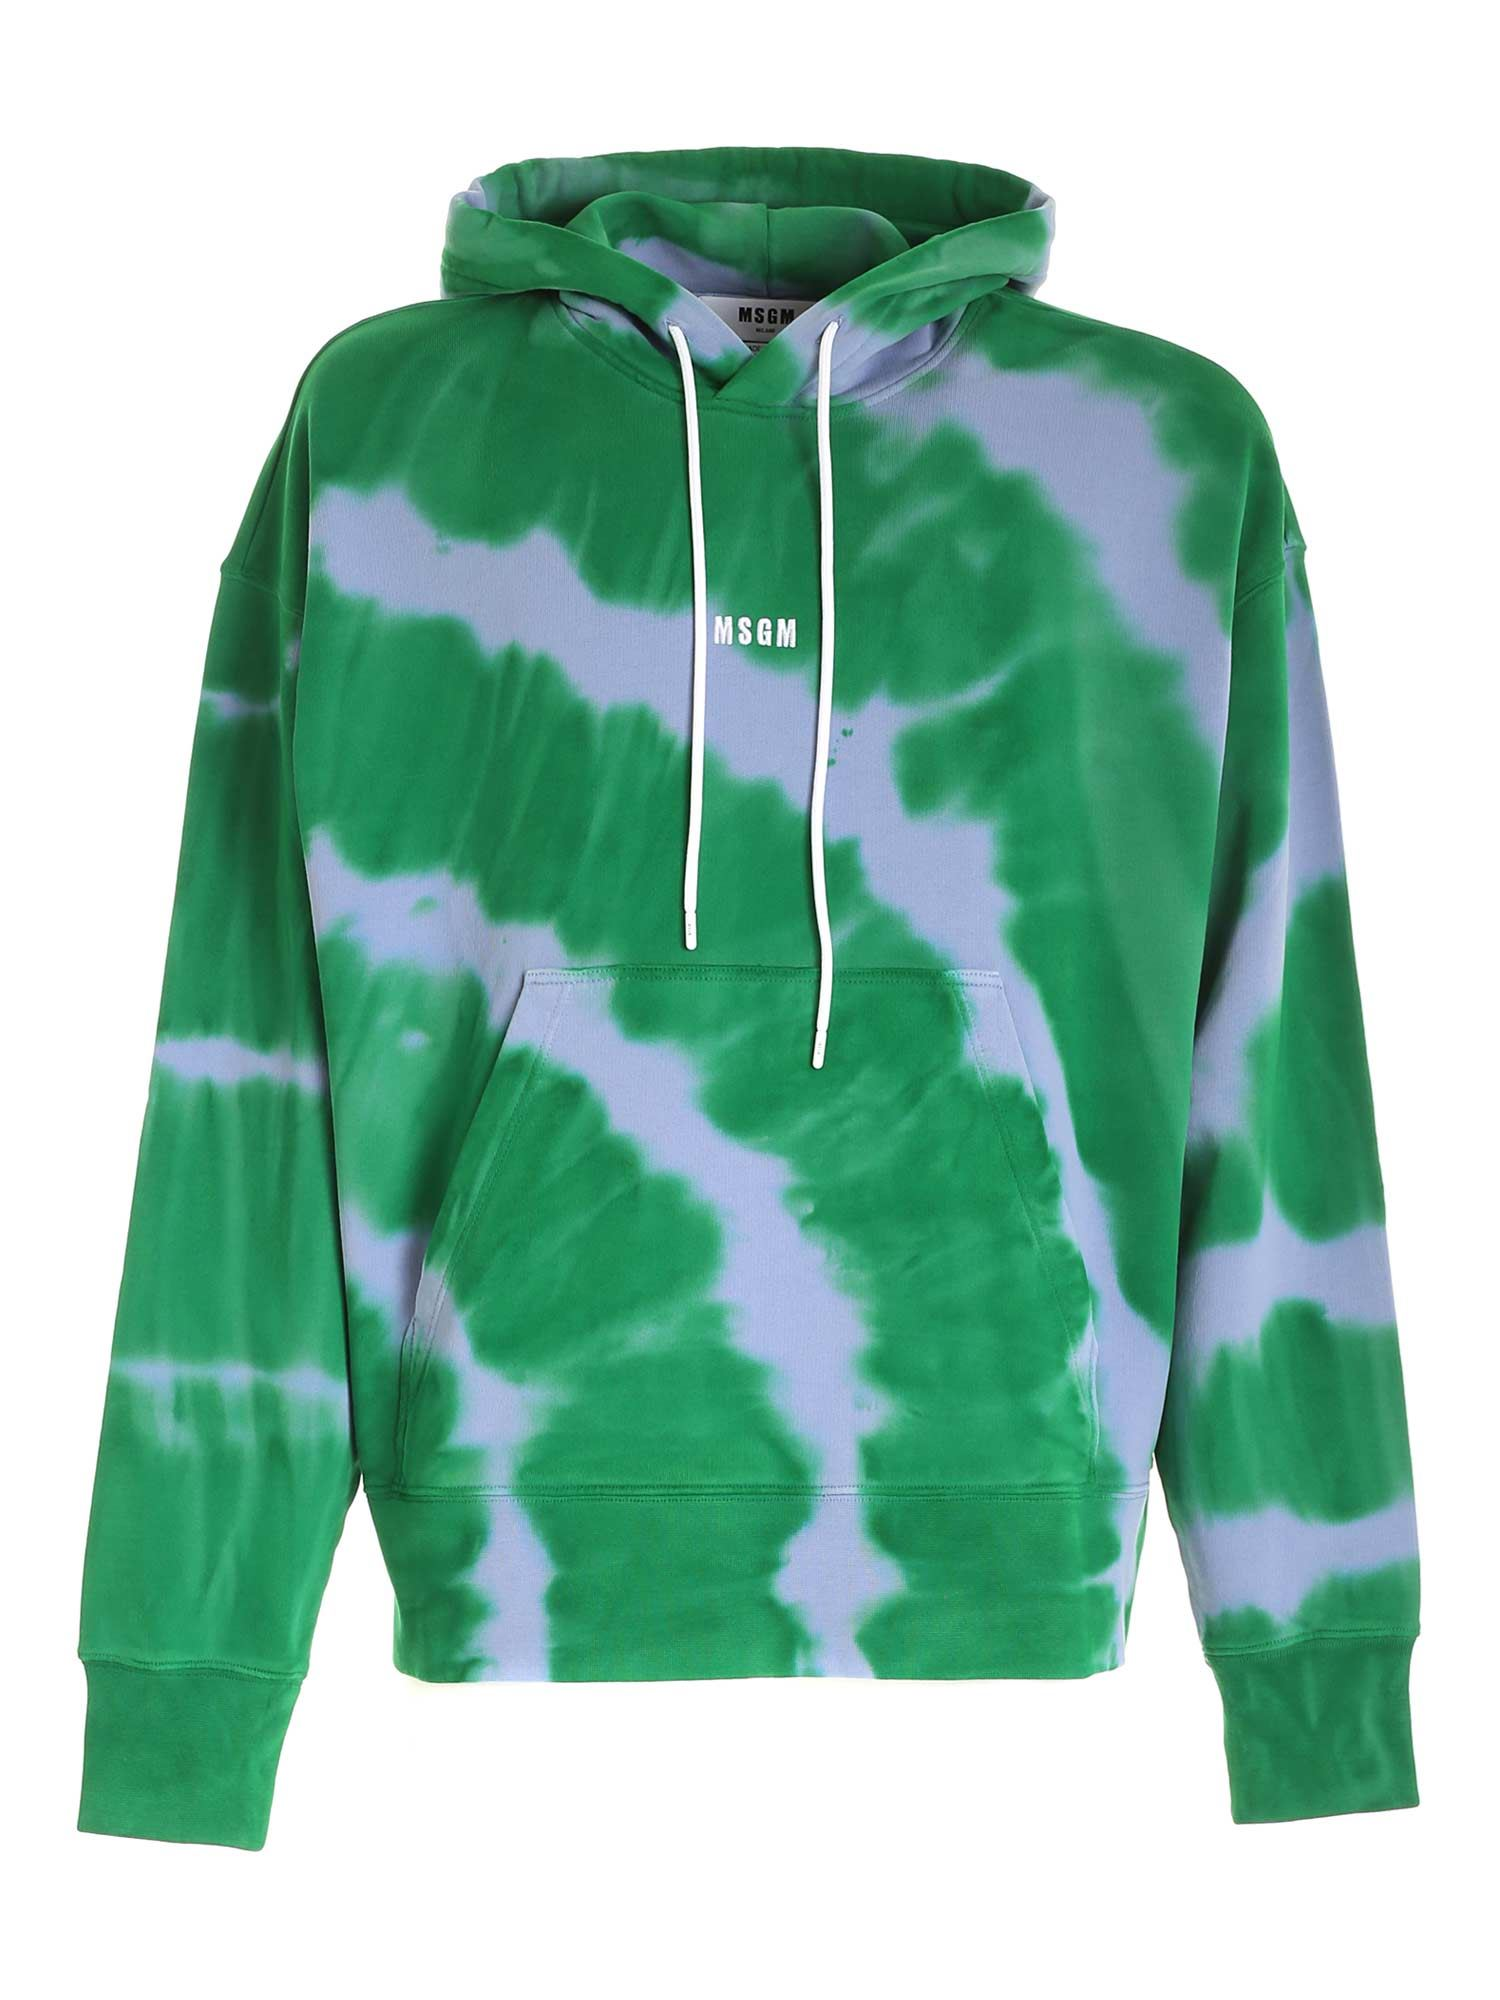 Msgm Cottons LOGO EMBROIDERY HOODIE IN GREEN AND VIOLET